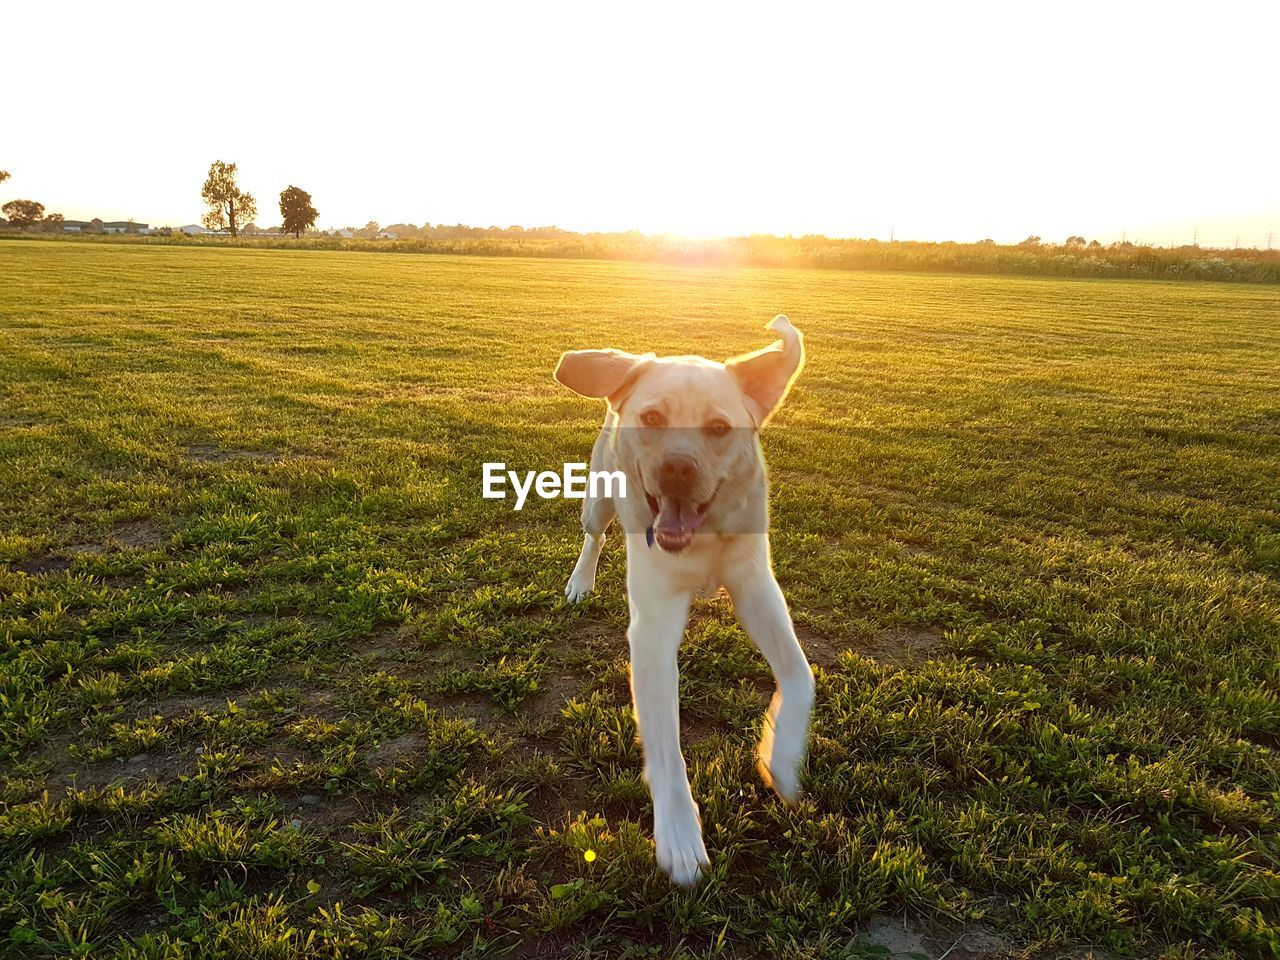 domestic, pets, domestic animals, mammal, one animal, canine, dog, animal themes, animal, grass, field, vertebrate, land, plant, sky, landscape, nature, running, no people, day, outdoors, lens flare, mouth open